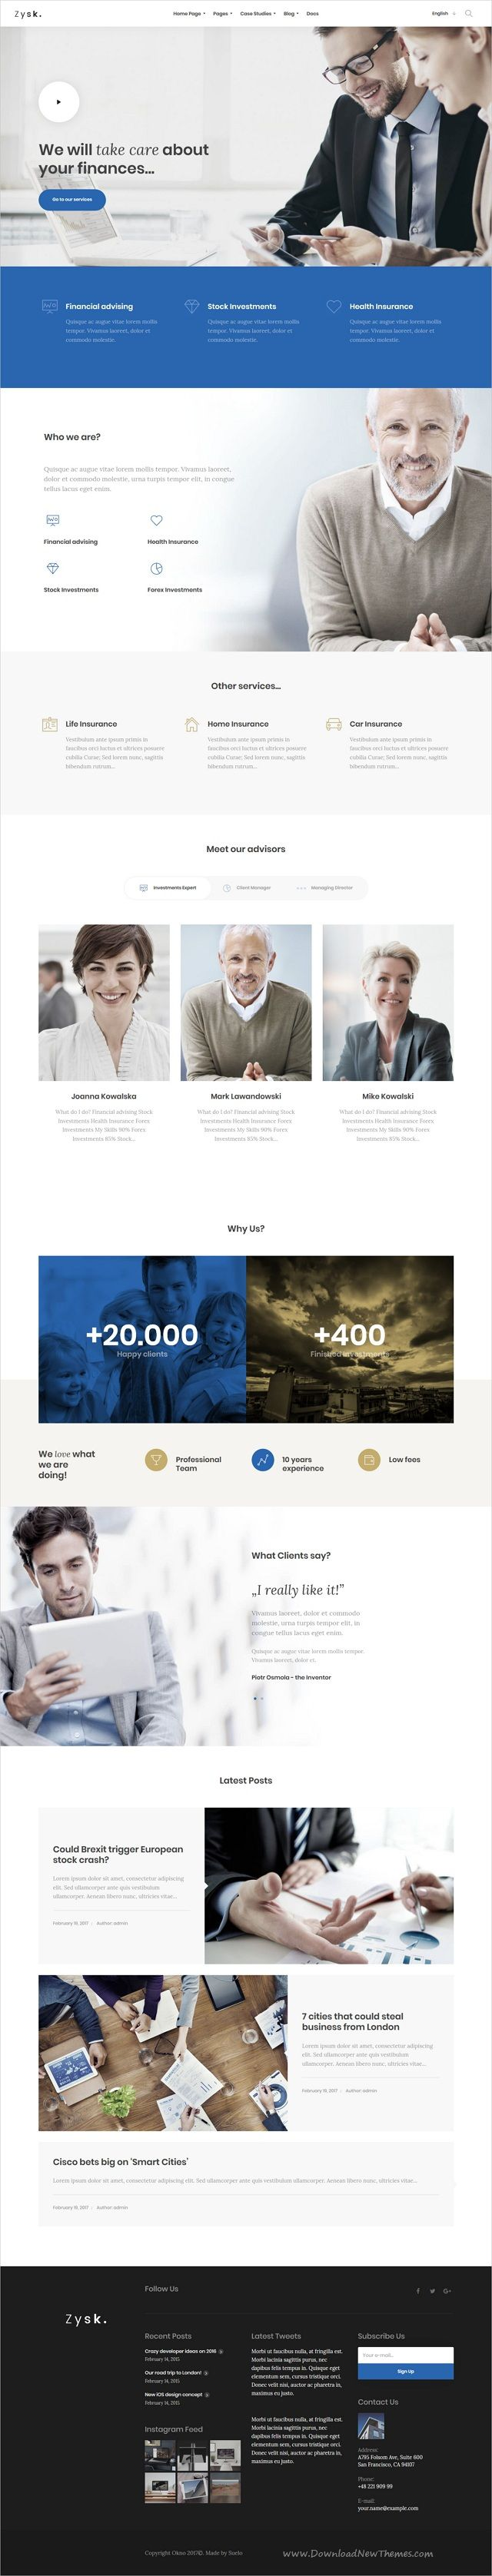 Zysk is smooth and stylish 7in1 responsive #WordPress theme for #business, #finance and #consulting services professional website download now..